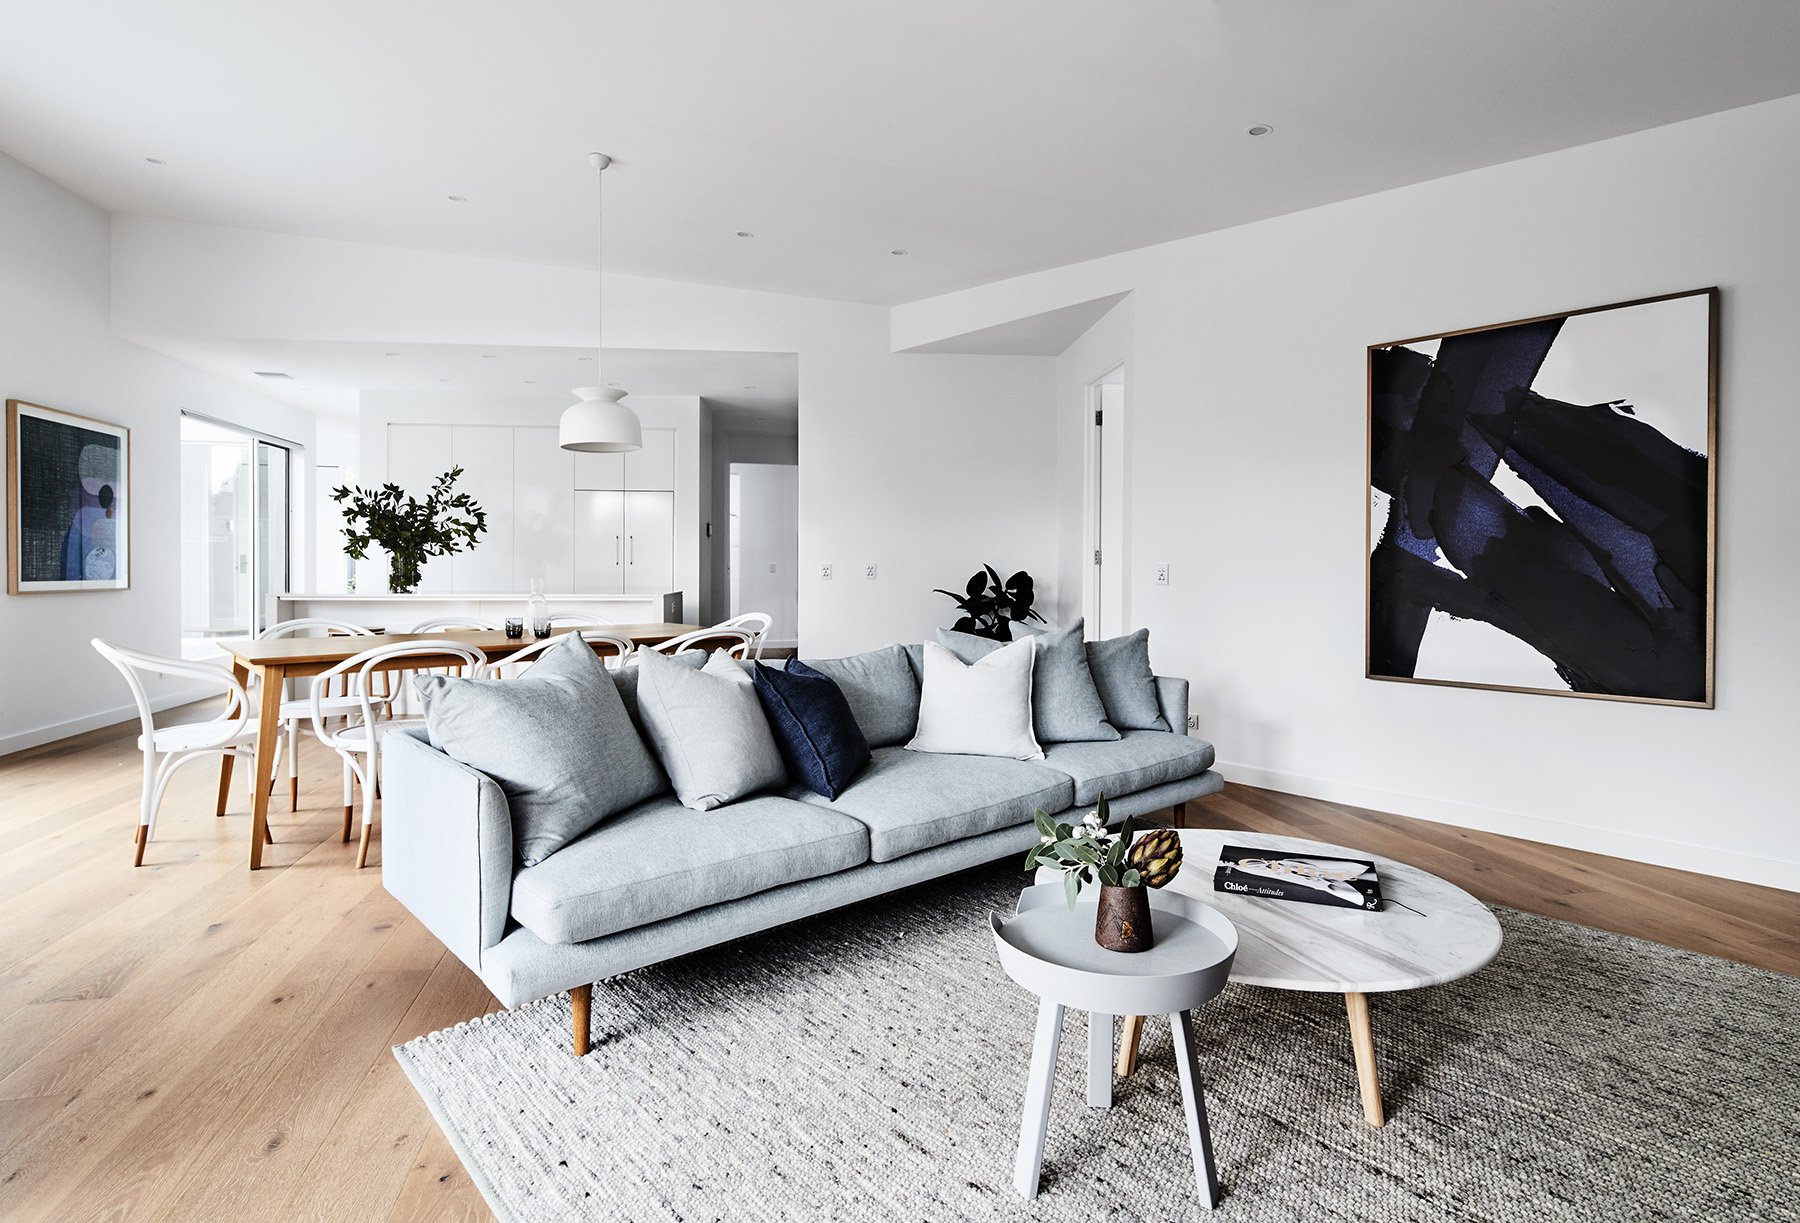 """'#Indigo 1"""" (on right) is available as a limited edition print through SGM - but hurry there's not many left! Styled by me for  Thomas Archer Homes , photography  James Geer ."""